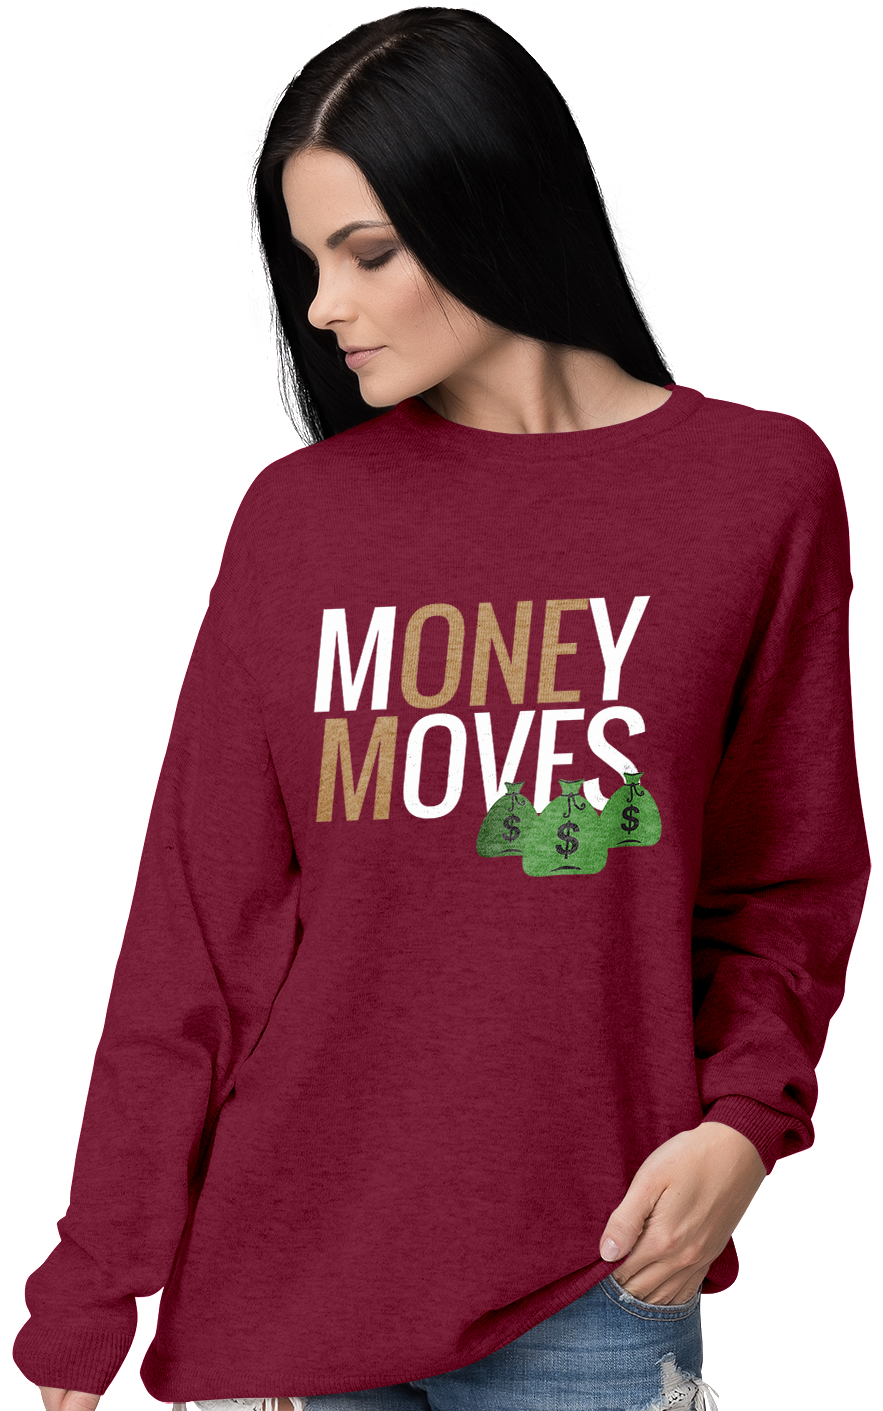 Money Moves W/ Money Bags Sweatshirts (W) | Sweatshirt | BFY Apparel | Streetwear & More